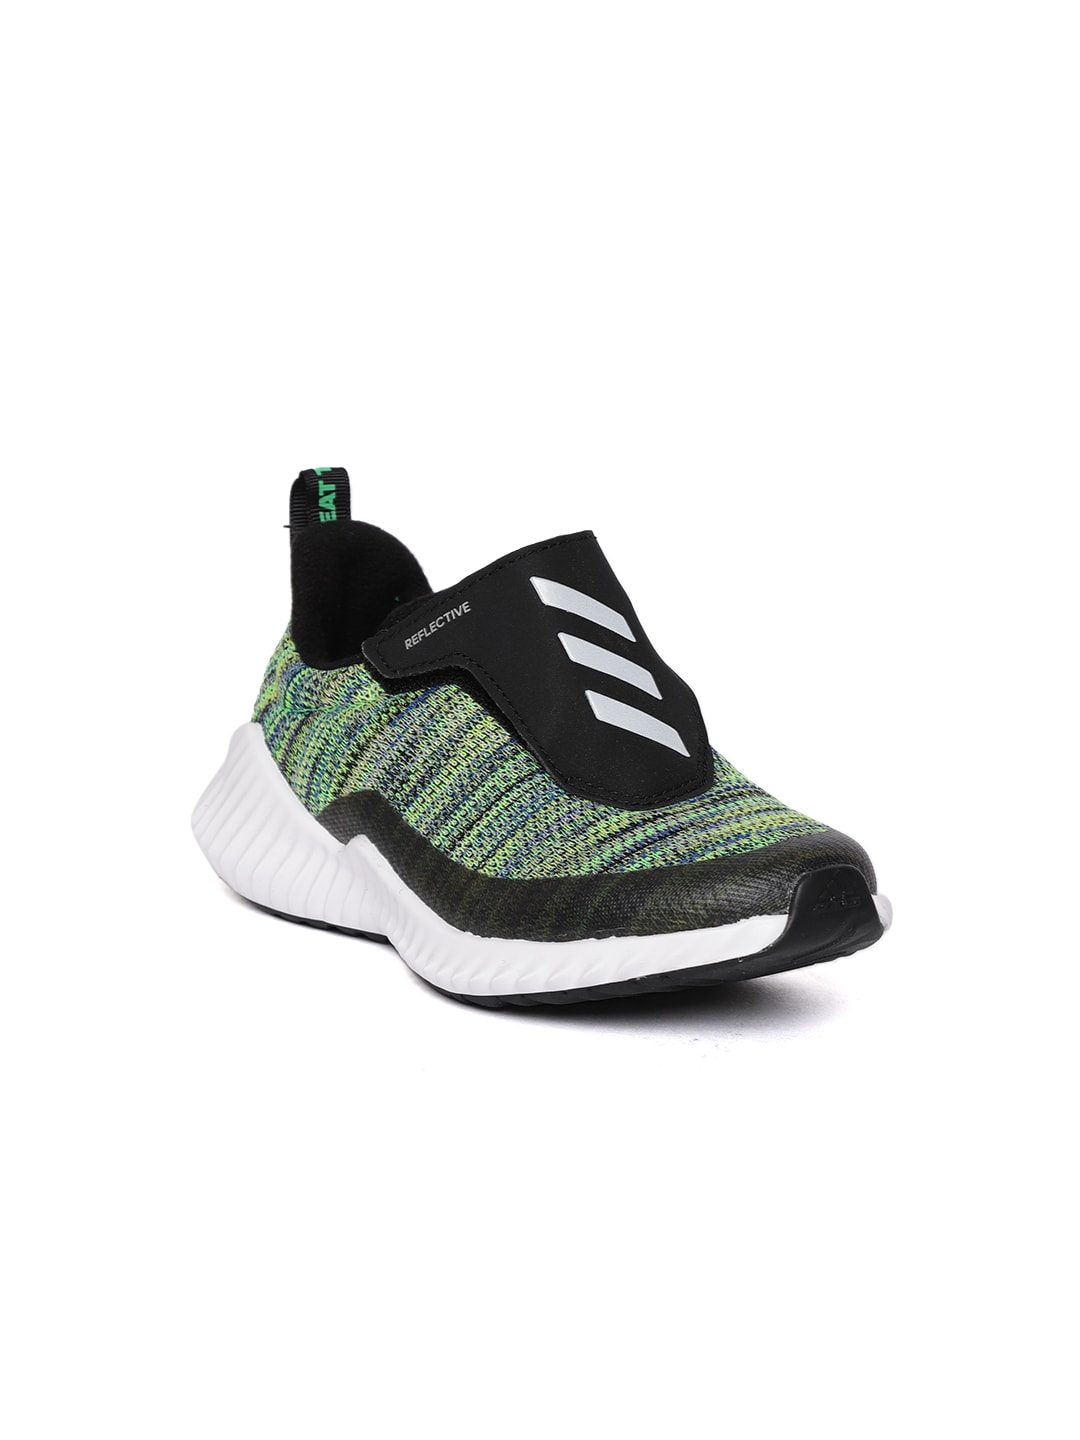 b4bed21ef565a2 Women s Adidas Shoes - Buy Adidas Shoes for Women Online in India